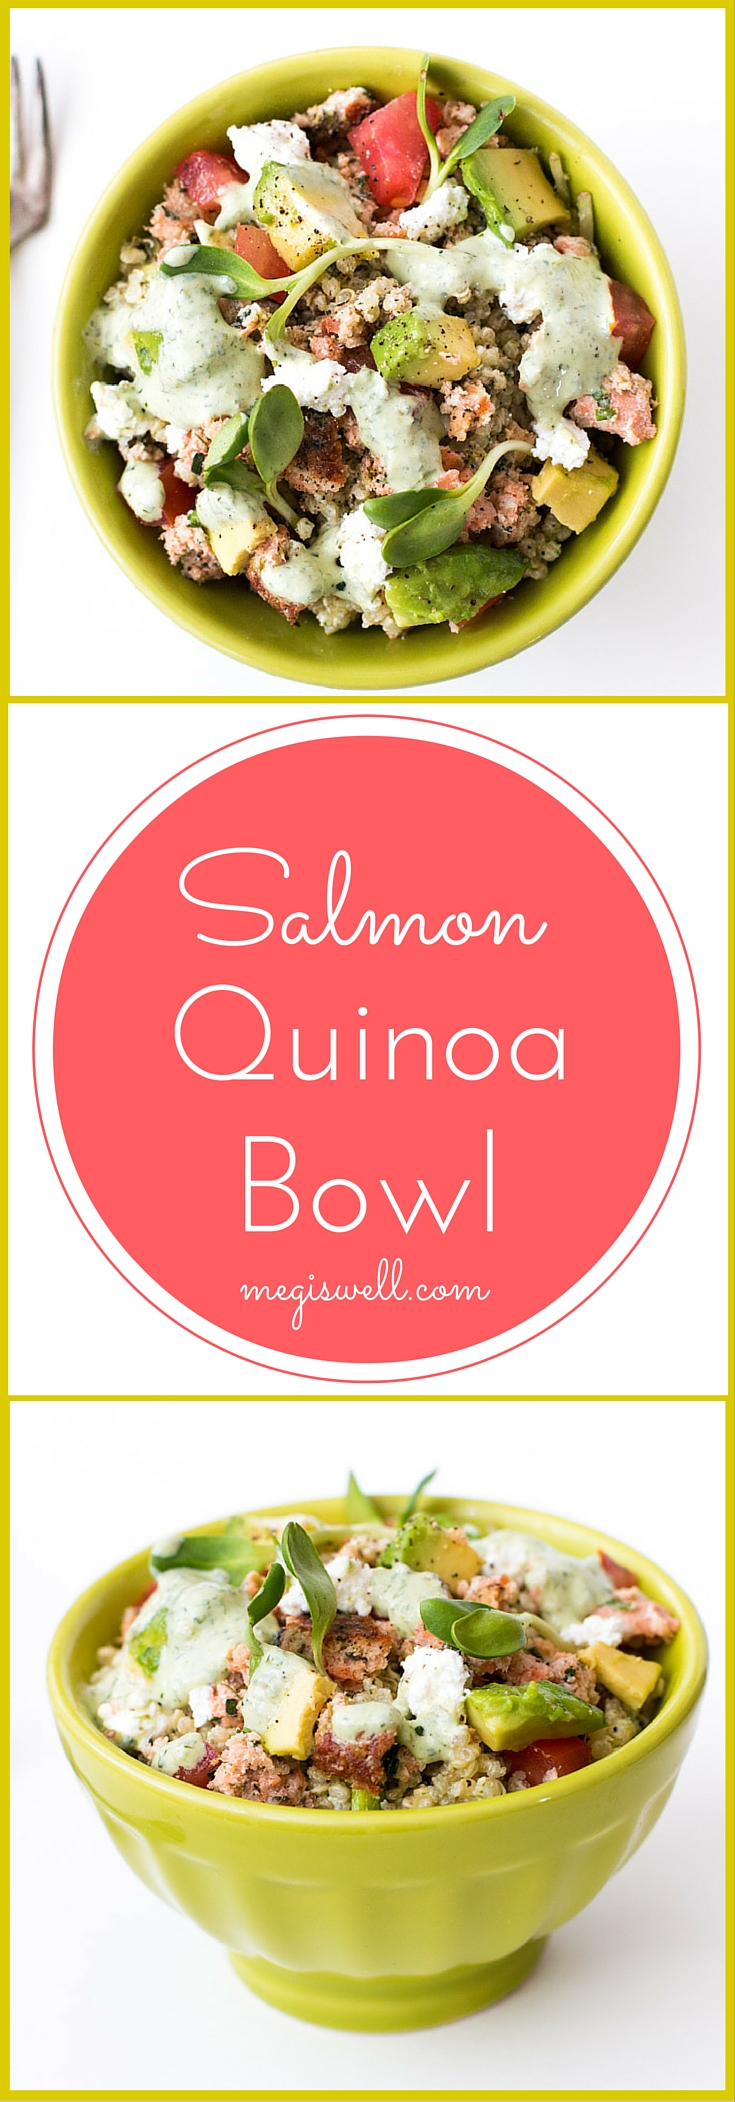 Salmon Quinoa Bowl. Quinoa, salmon, diced tomatoes & avocado, sunflower sprouts, crumbled feta cheese, and a Mixed Herb Greek Yogurt dressing make a high protein, filling, and healthy meal with great flavors and textures.